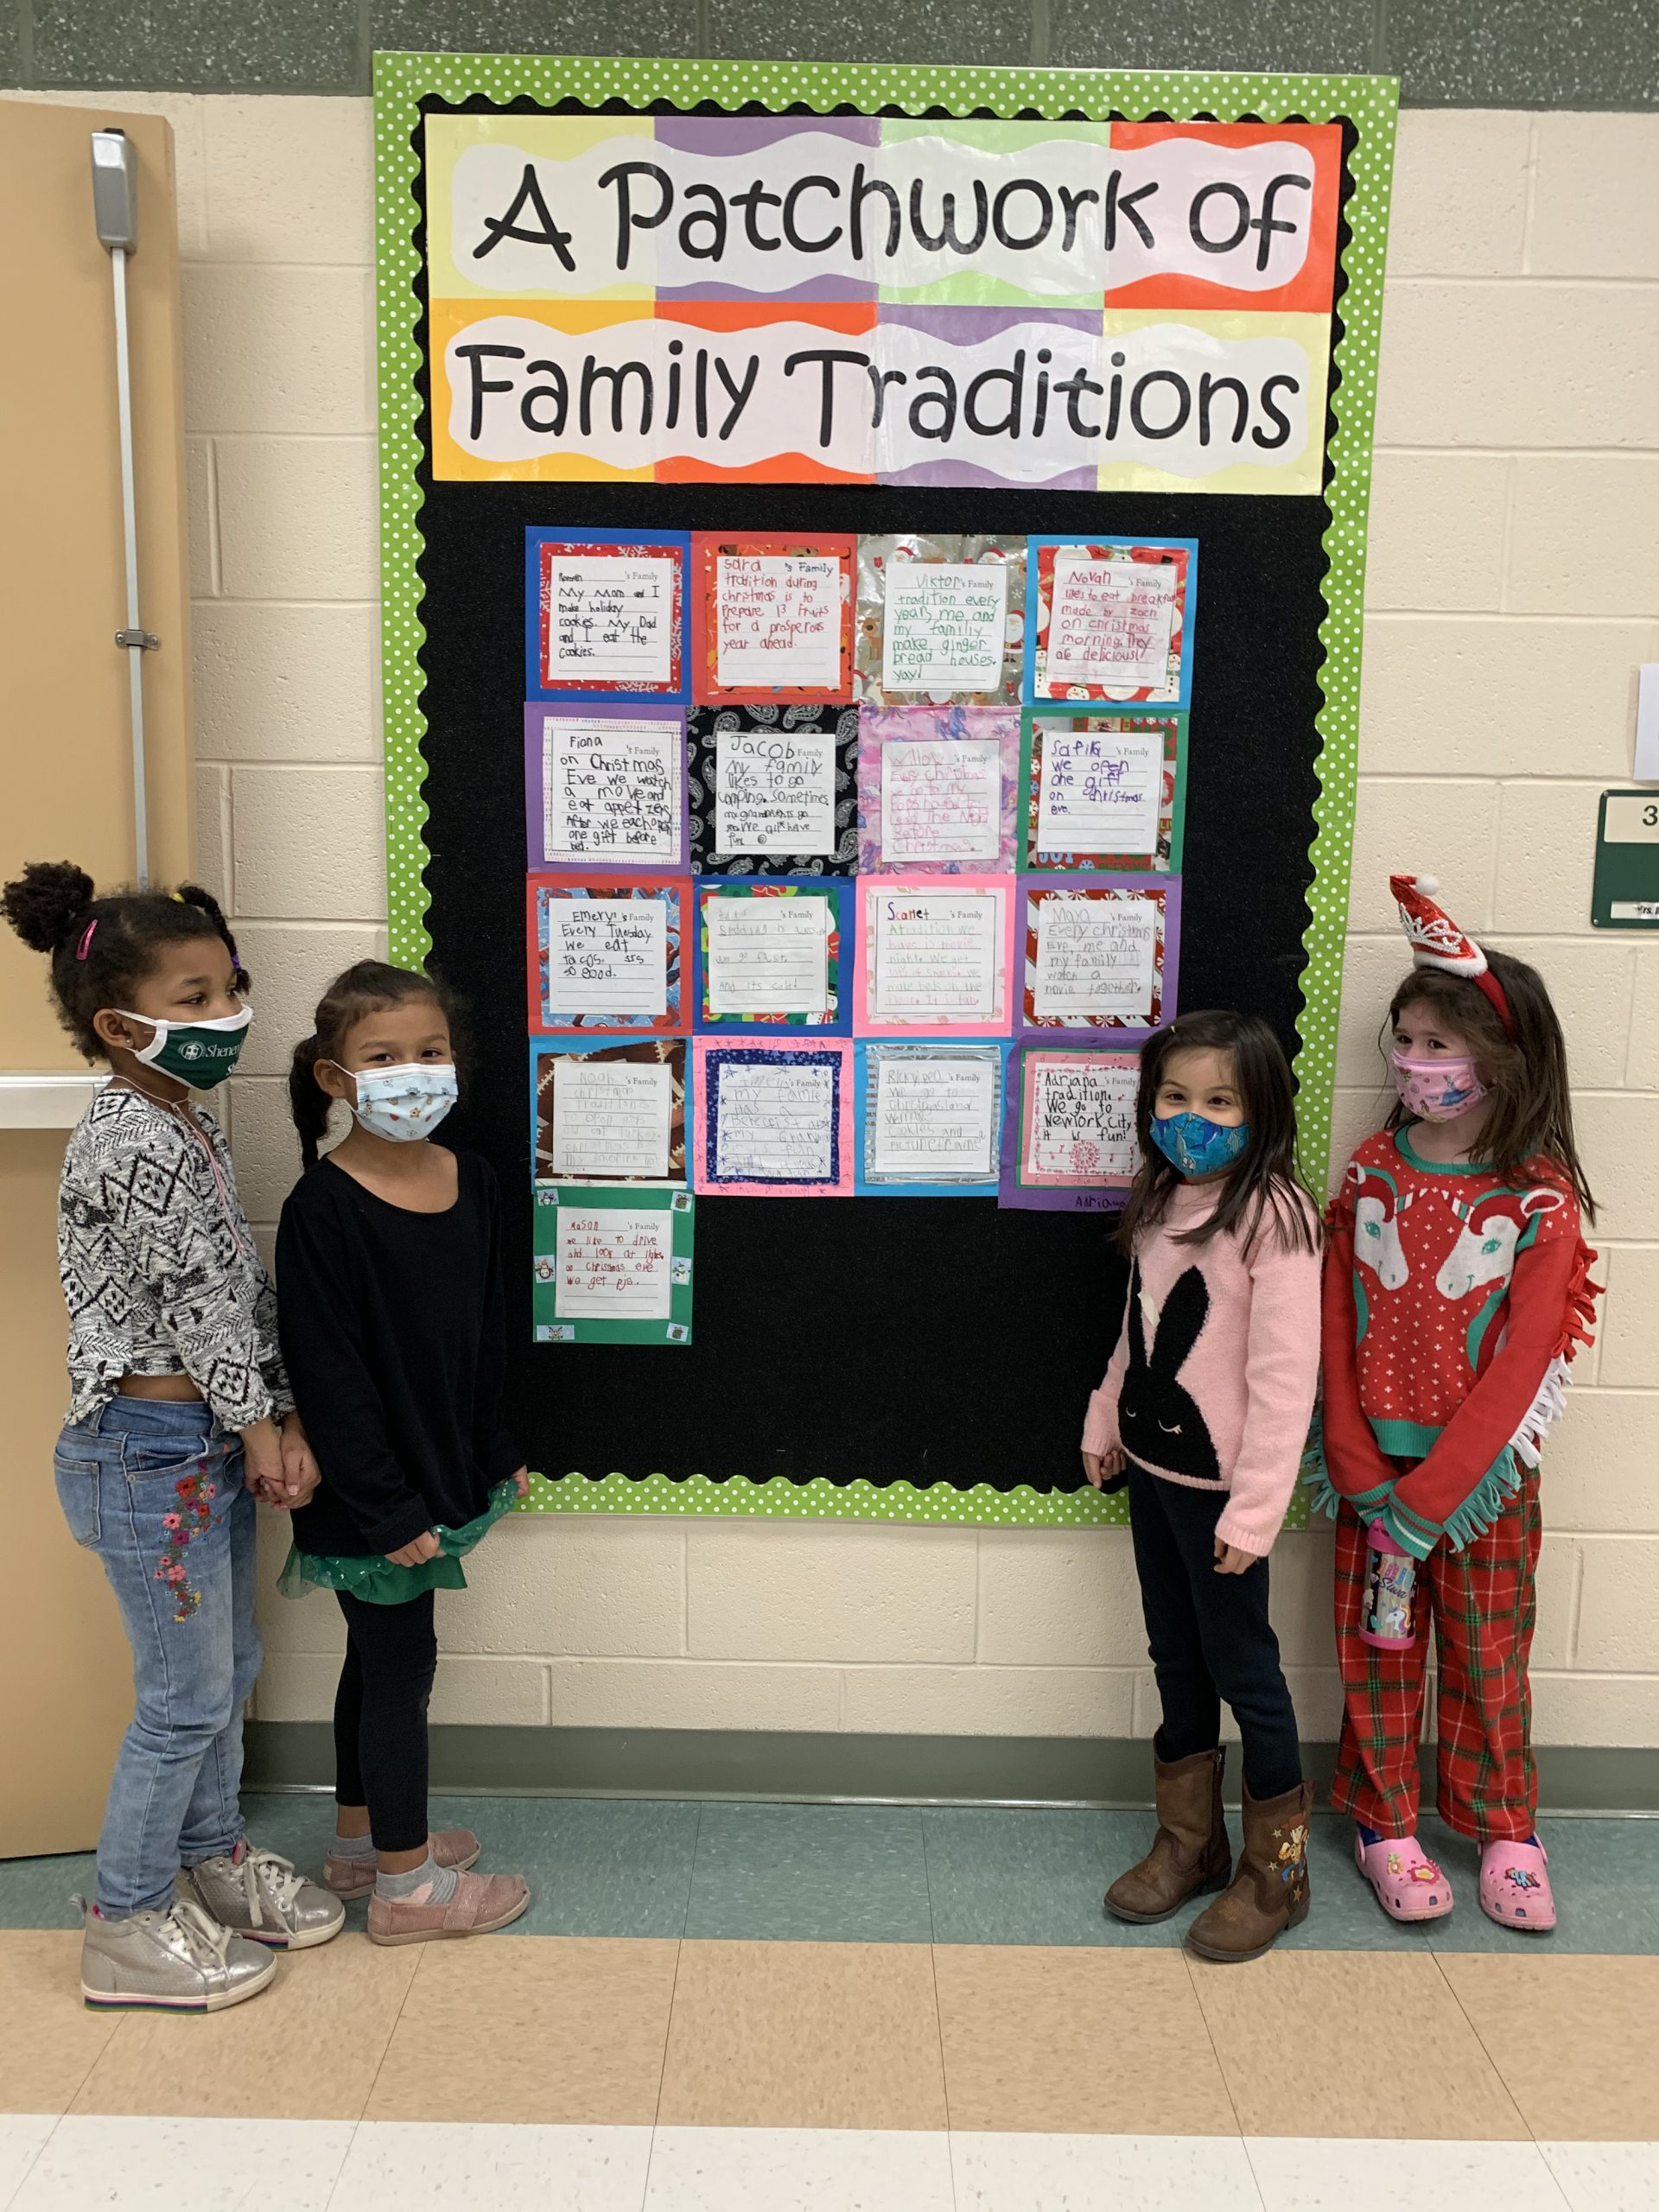 students in front of a bulletin board with sign that says A patchwork of Family Traditions